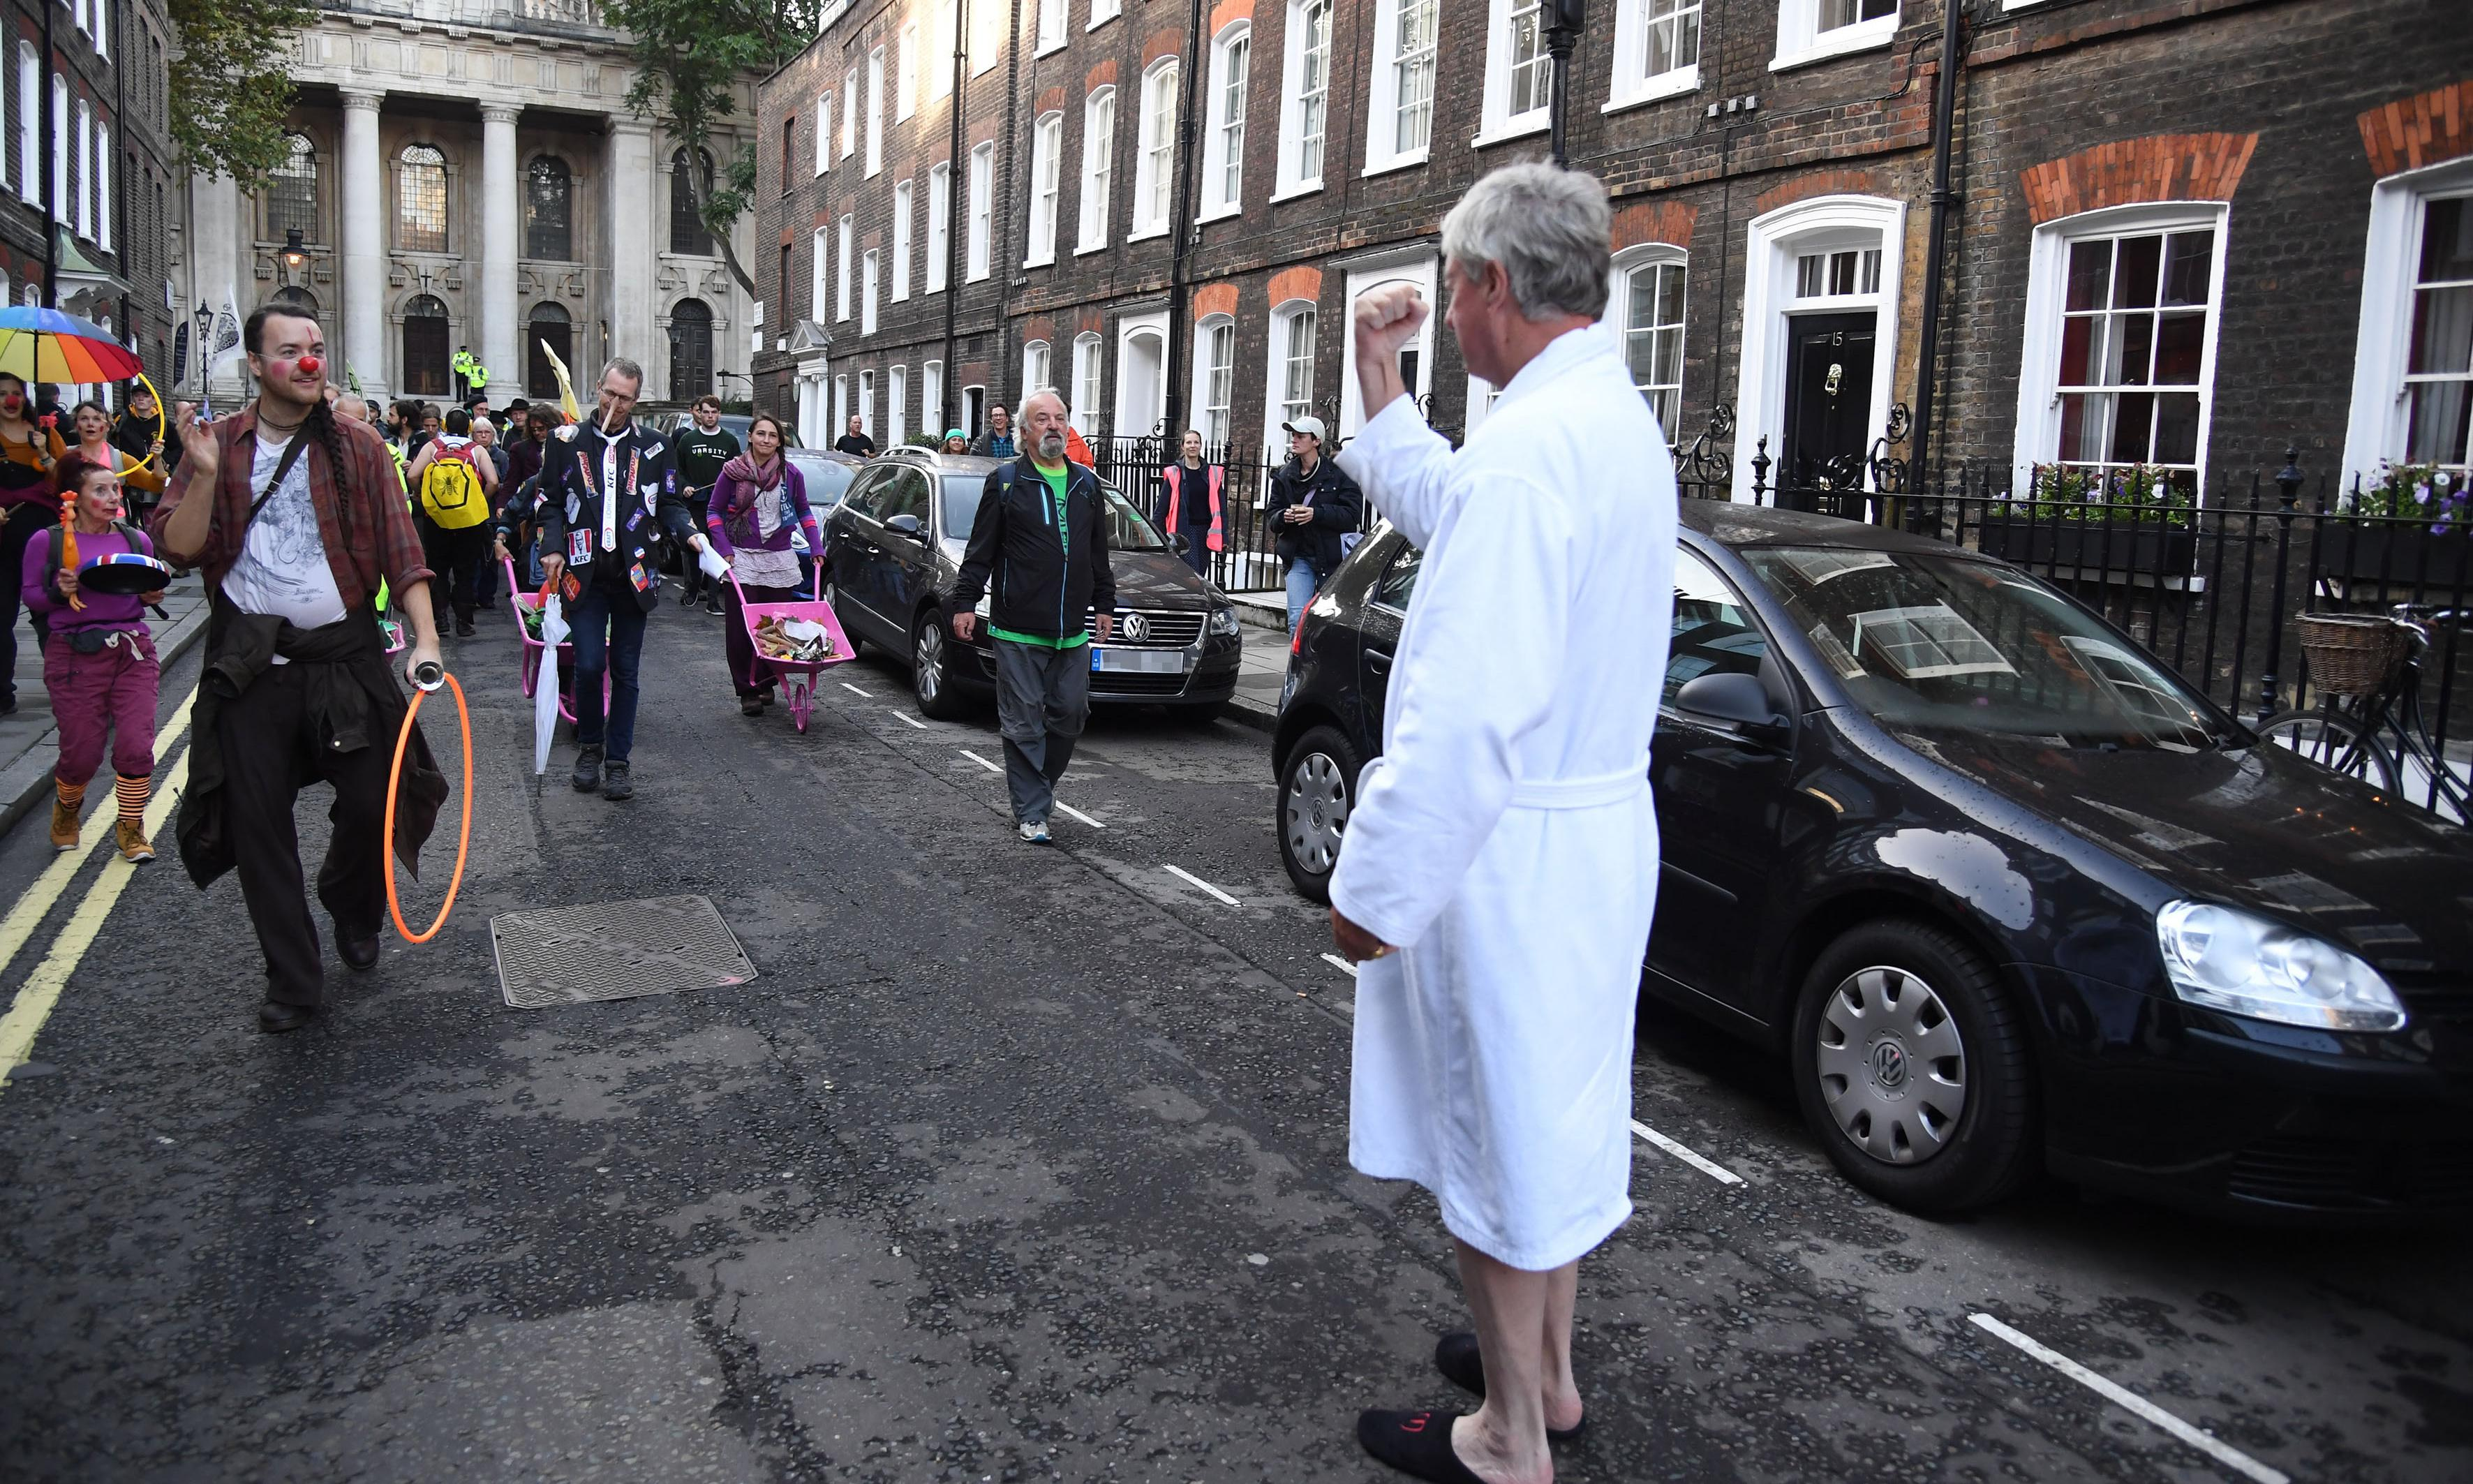 Tory peer in dressing gown confronts Extinction Rebellion activists